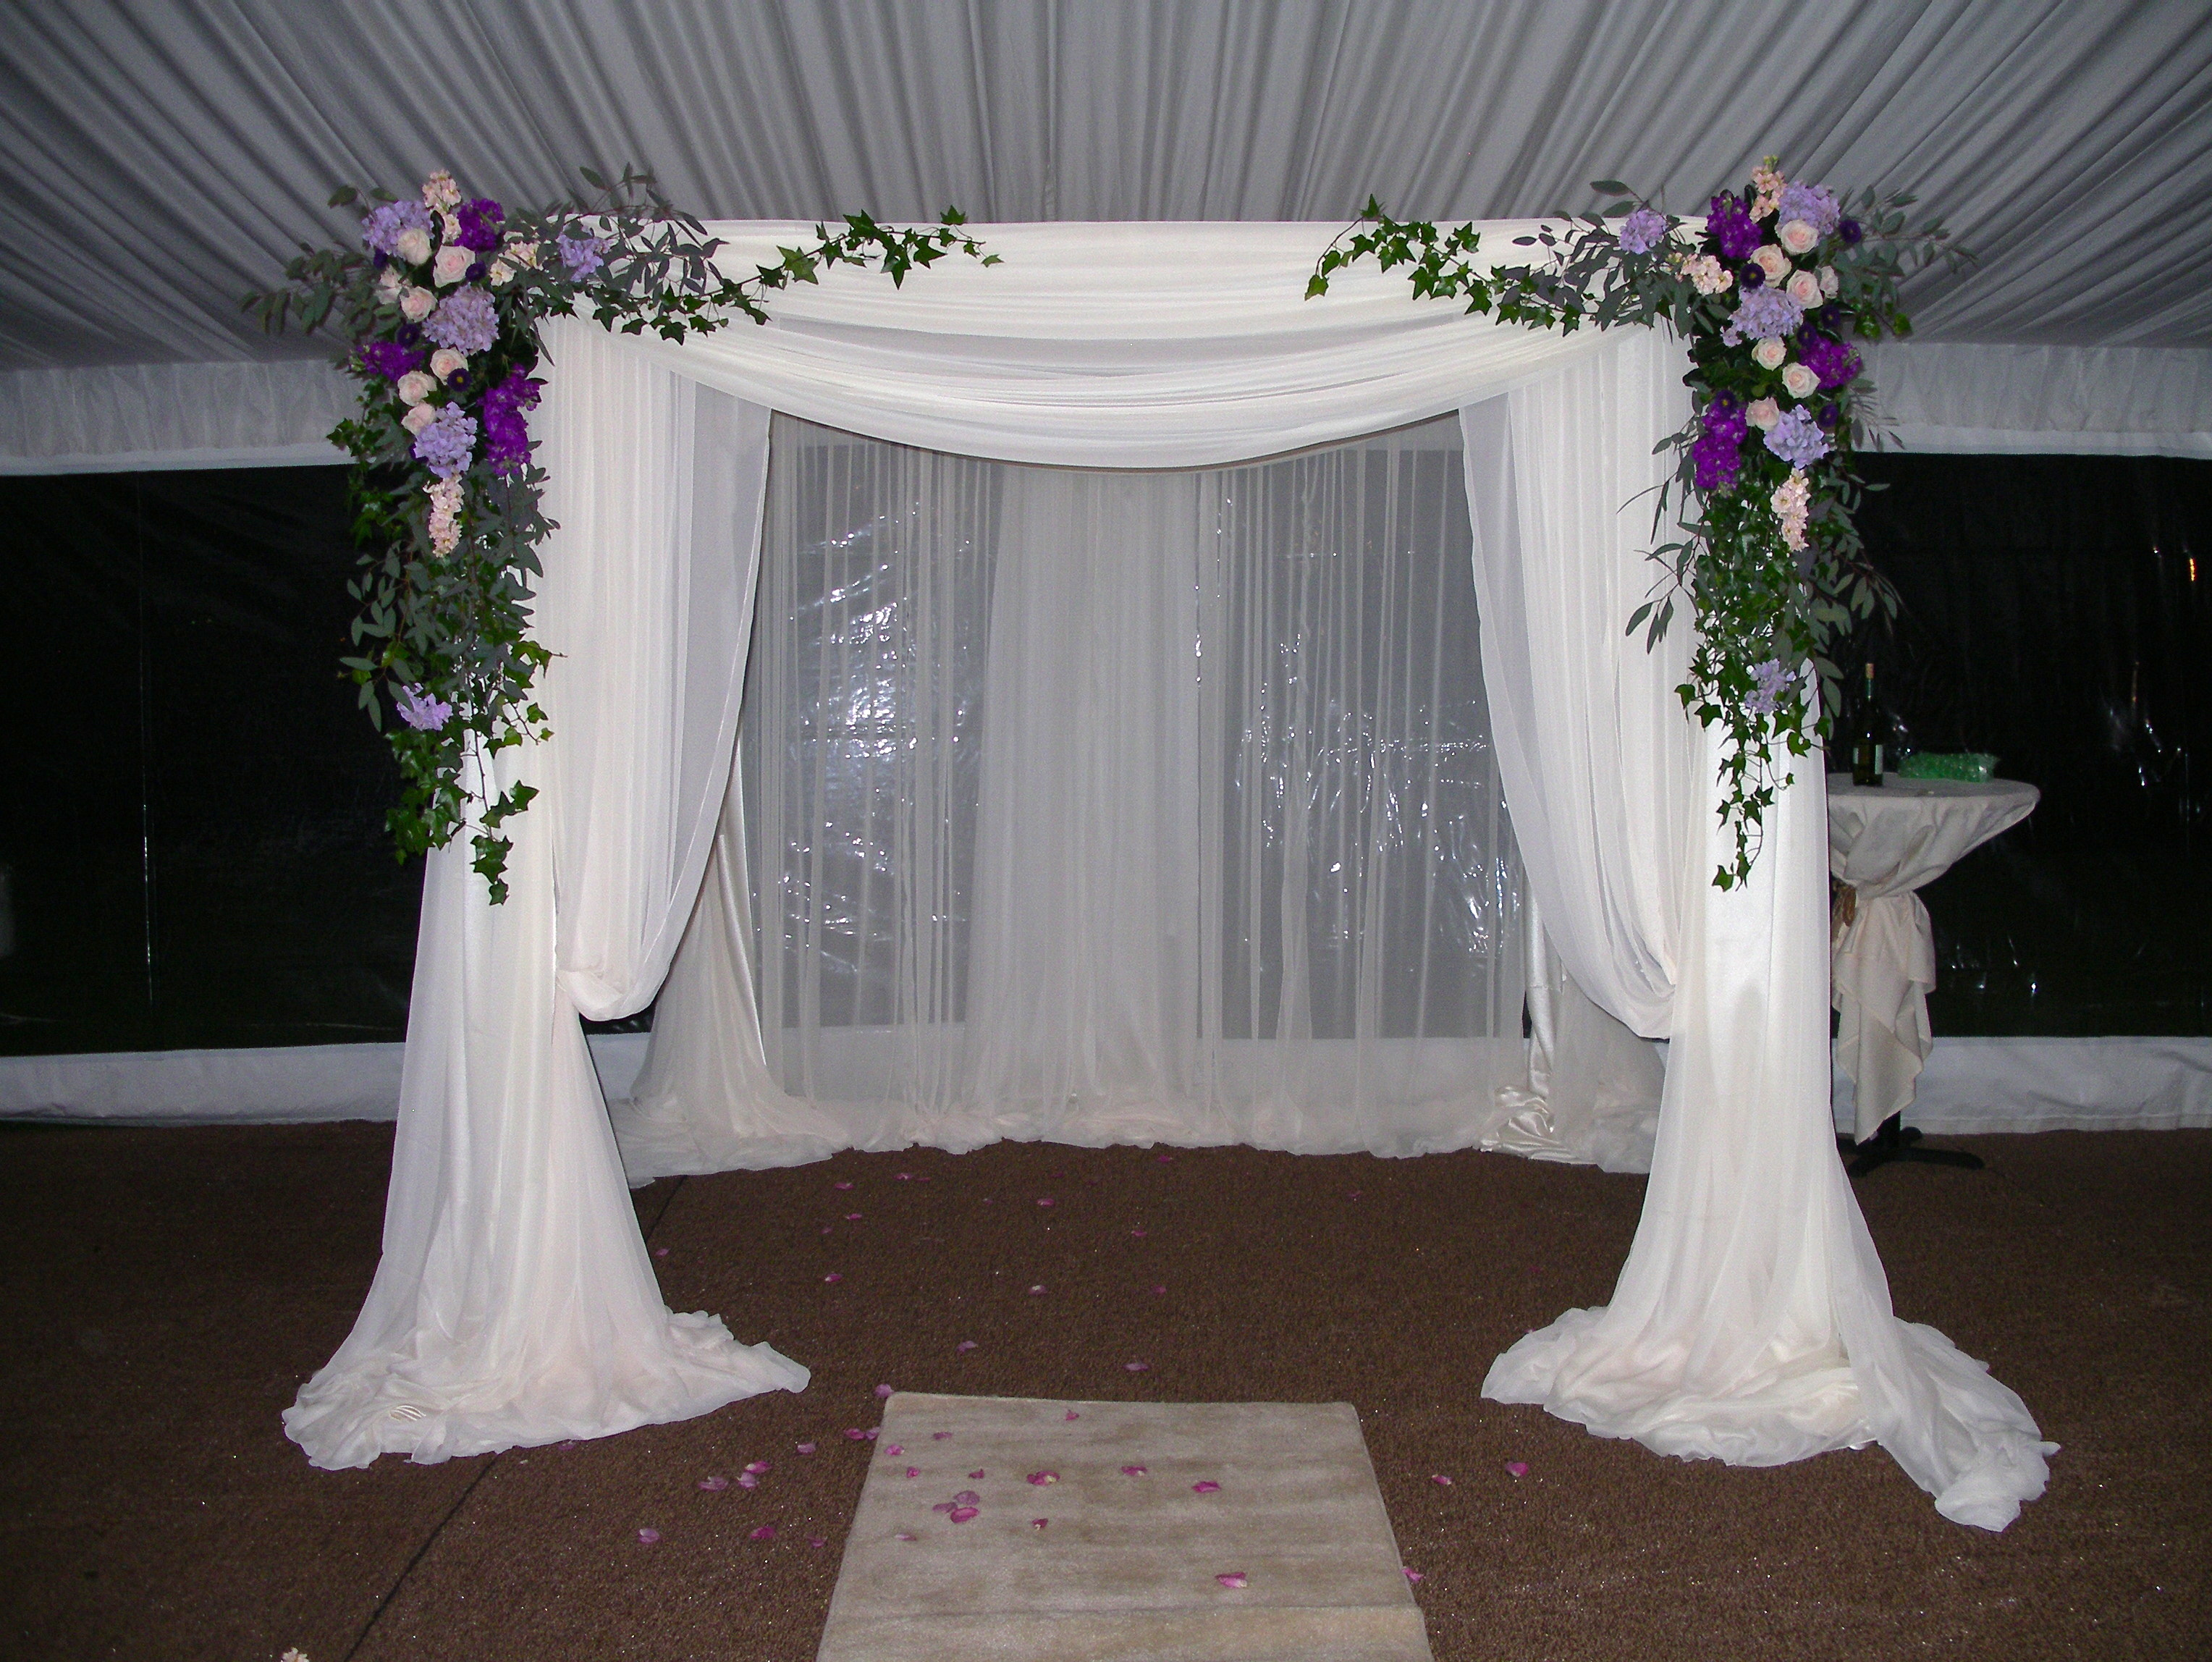 Ceremony, Flowers & Decor, white, Chuppah, Curtains